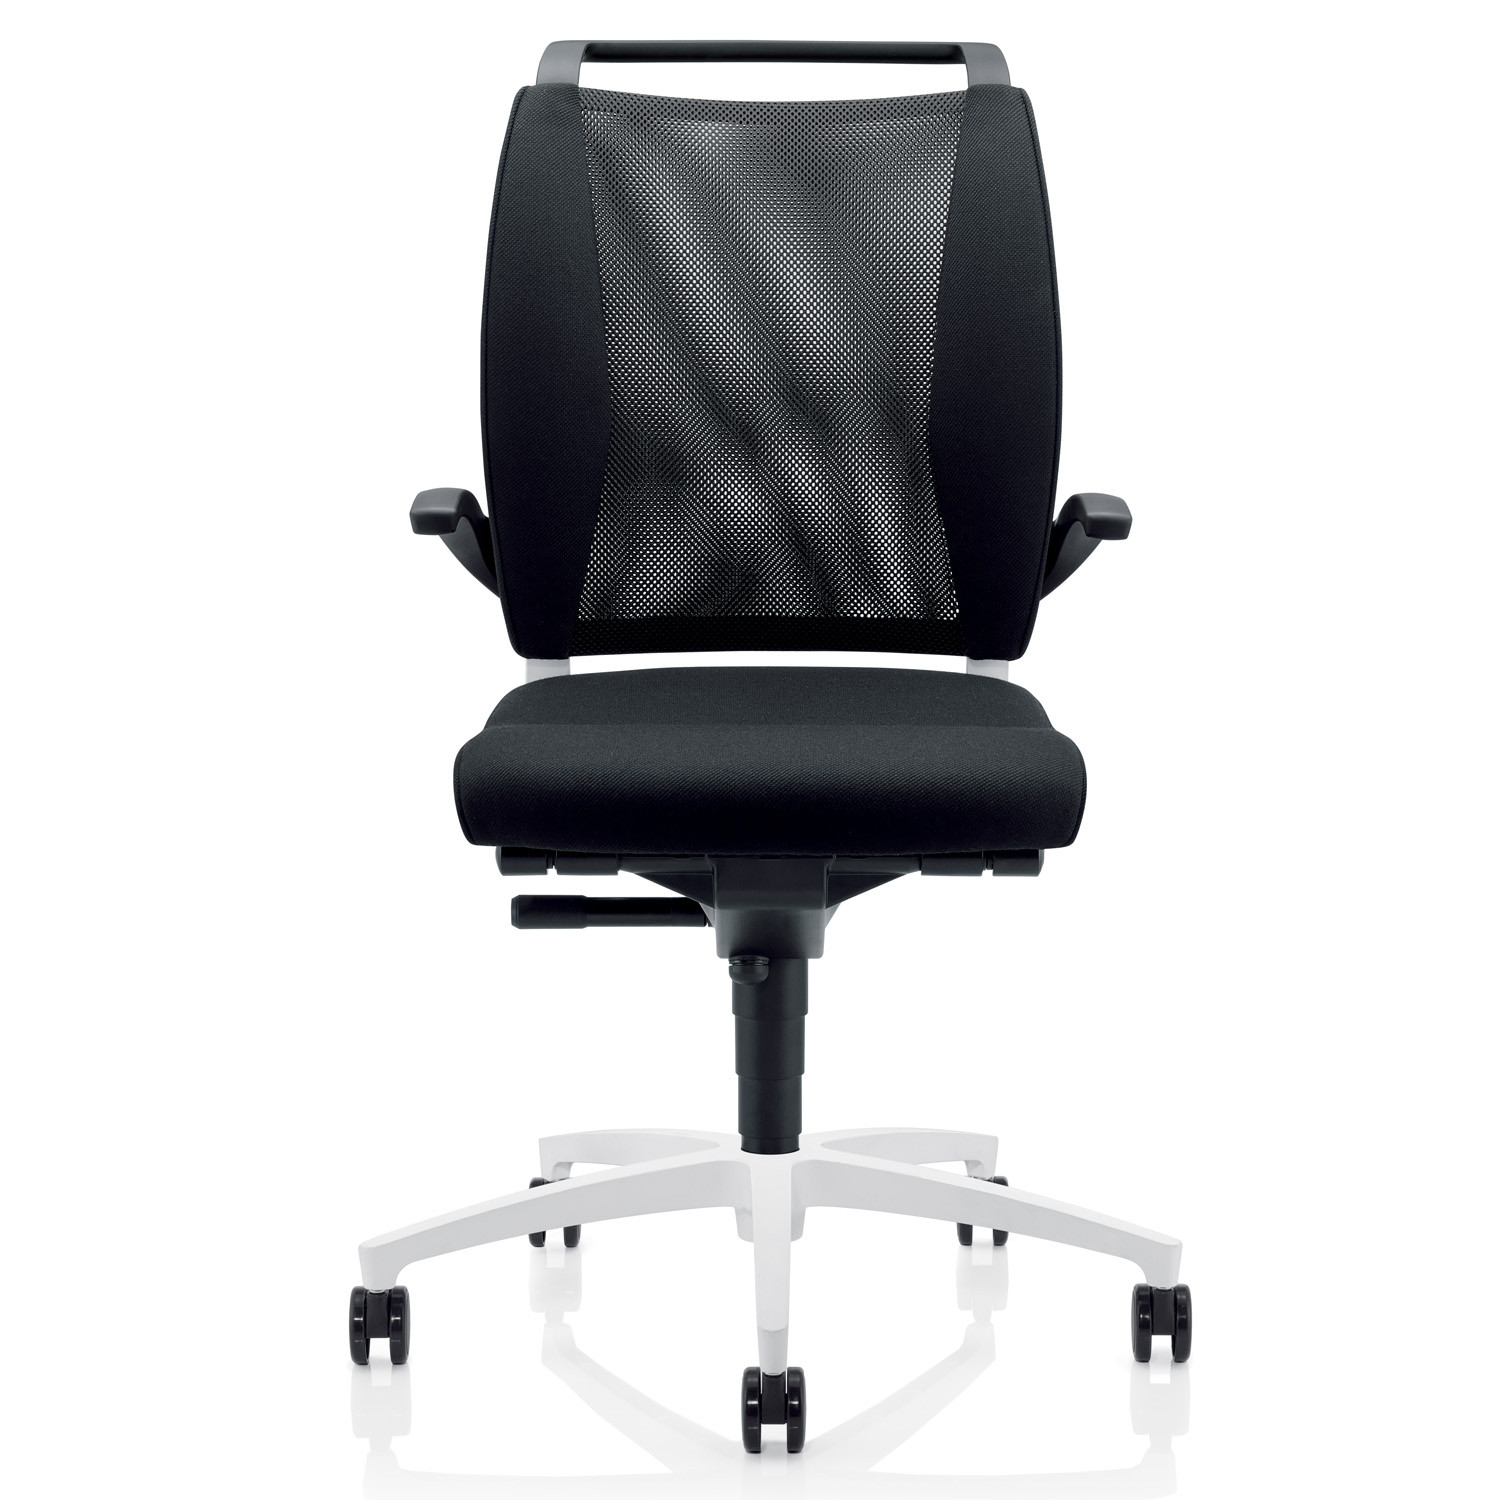 Effe Two Office Chair from Zuco